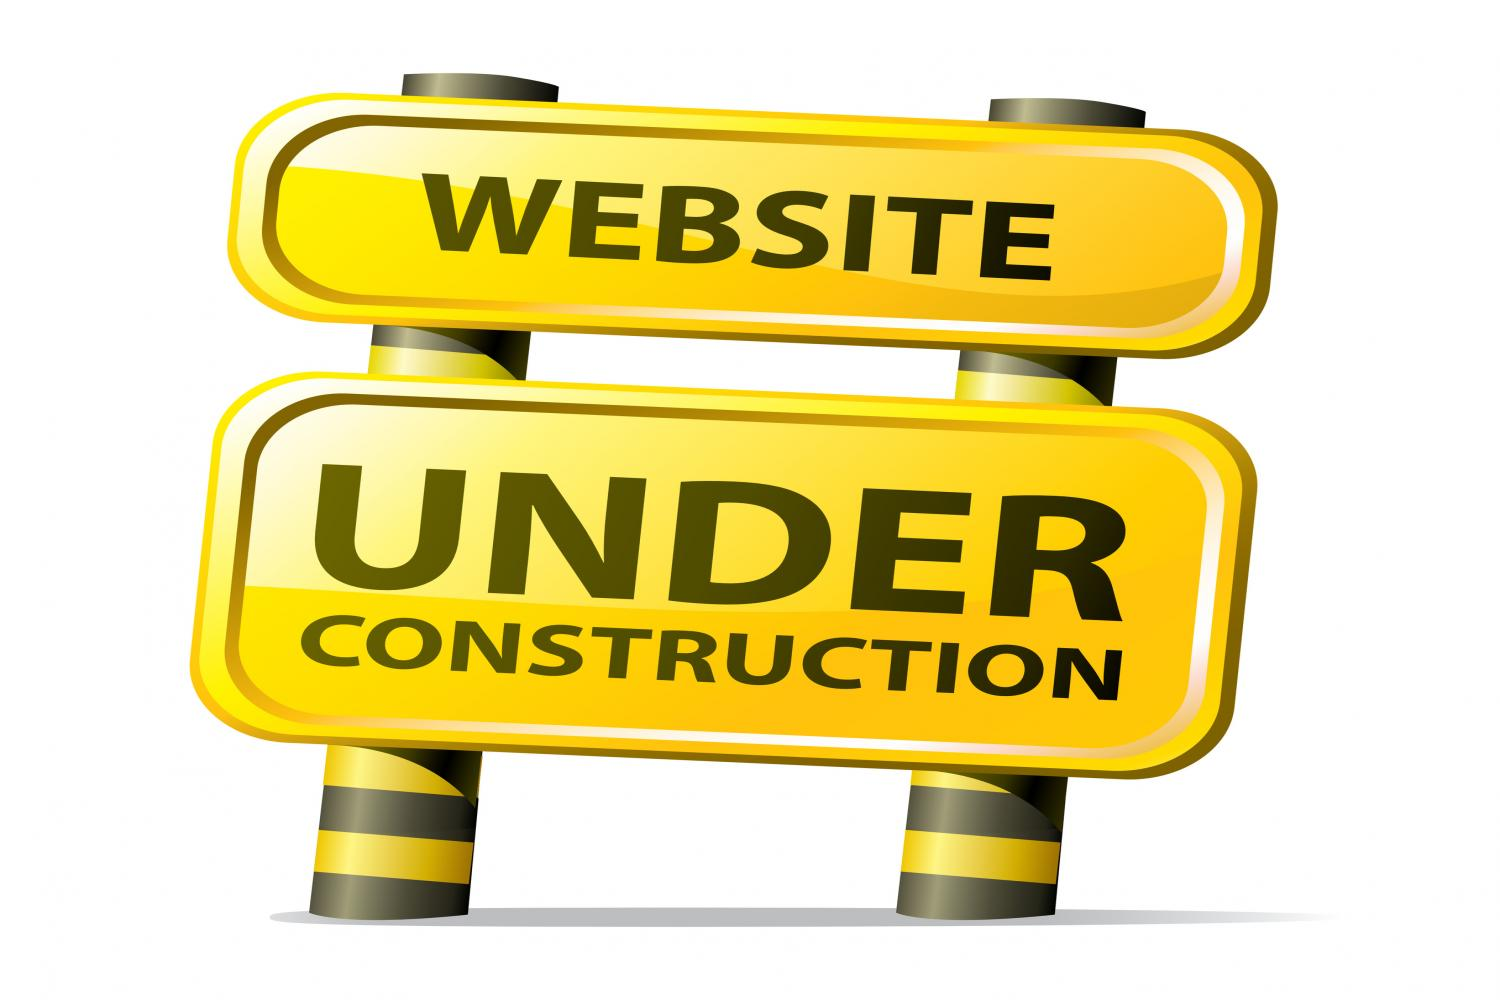 Website Under Construction Image 1